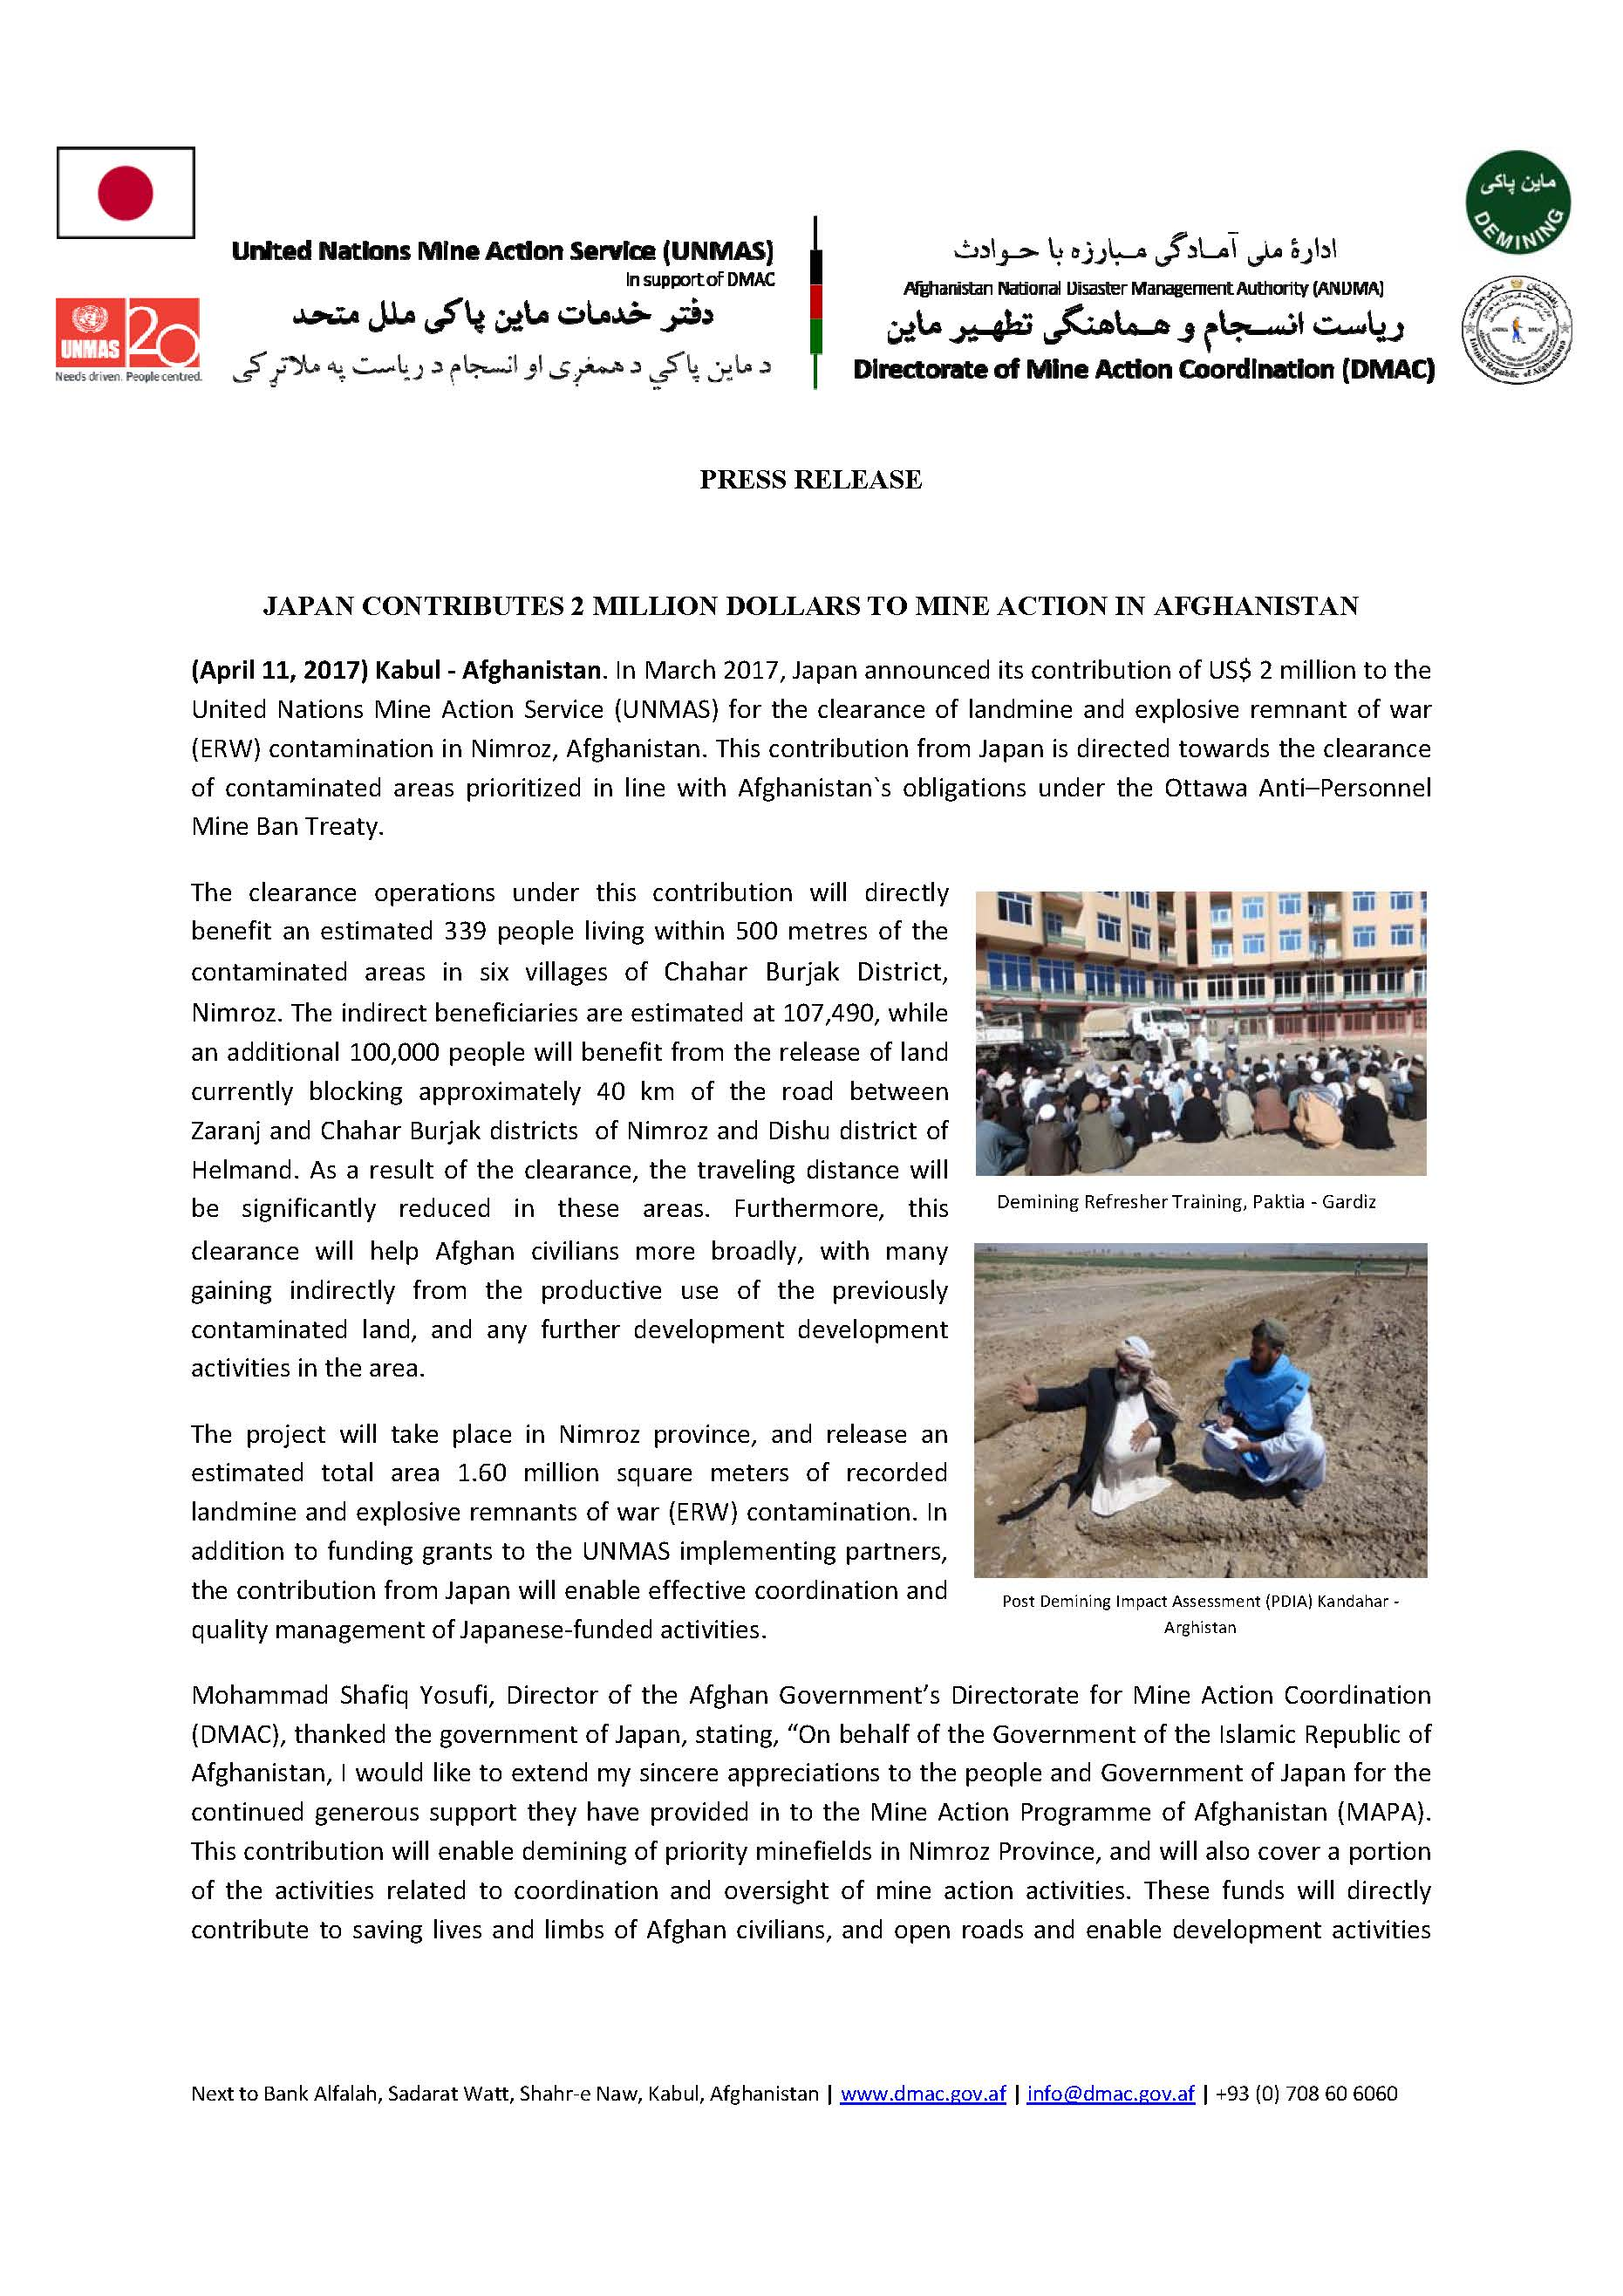 Press Release Japan VTF Funding 1396 Nimroz Page 1